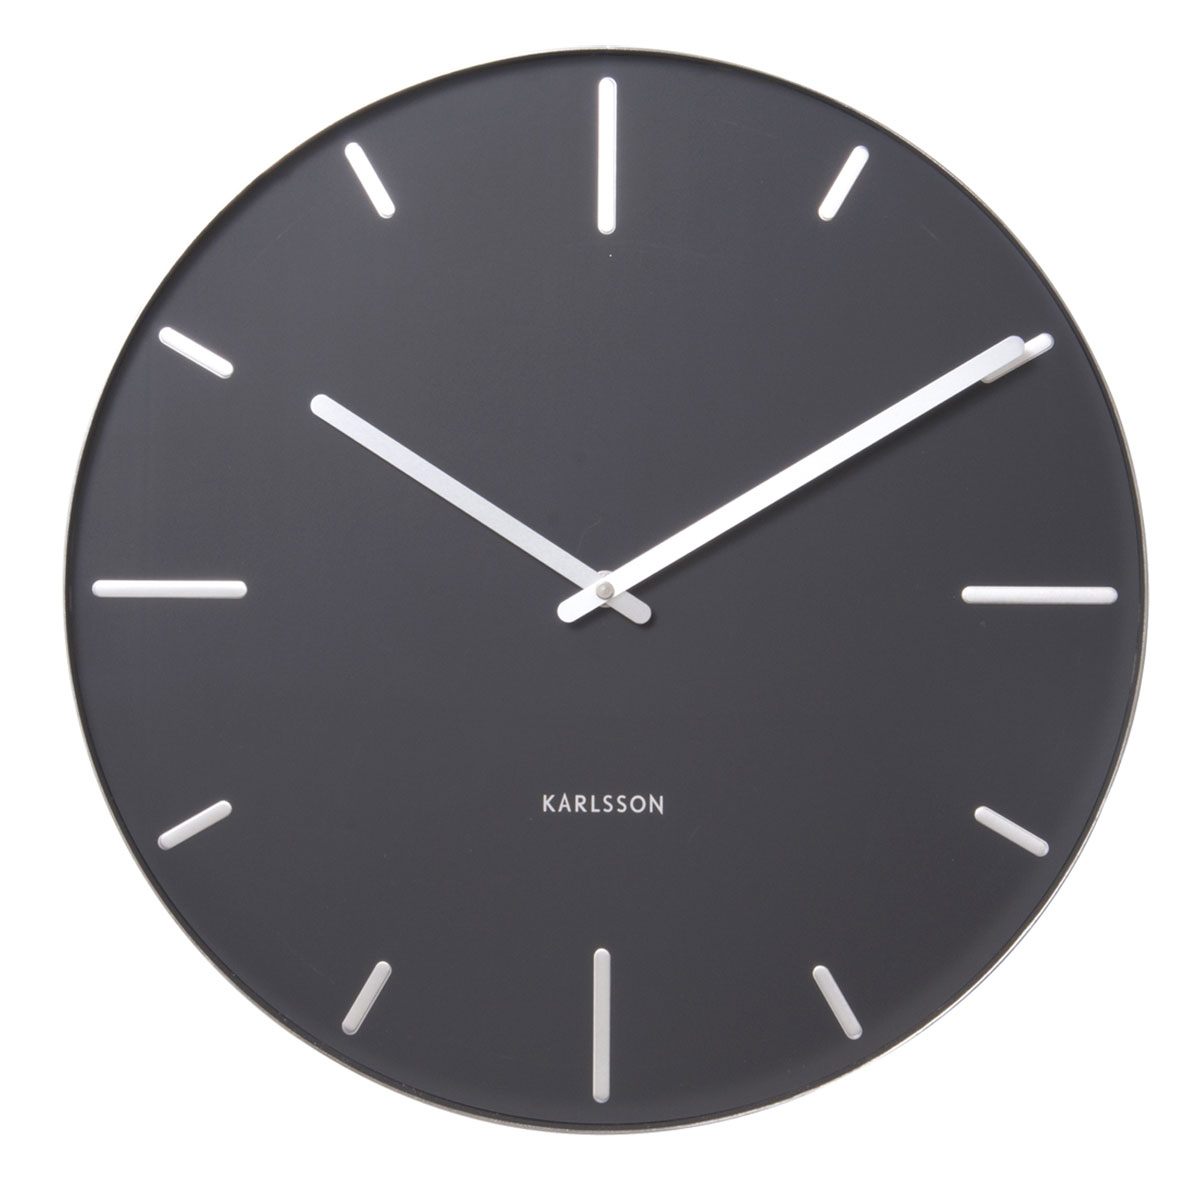 horloge de bureau london clock 24395 horloge murale horloge de bureau cartier pendulette de. Black Bedroom Furniture Sets. Home Design Ideas